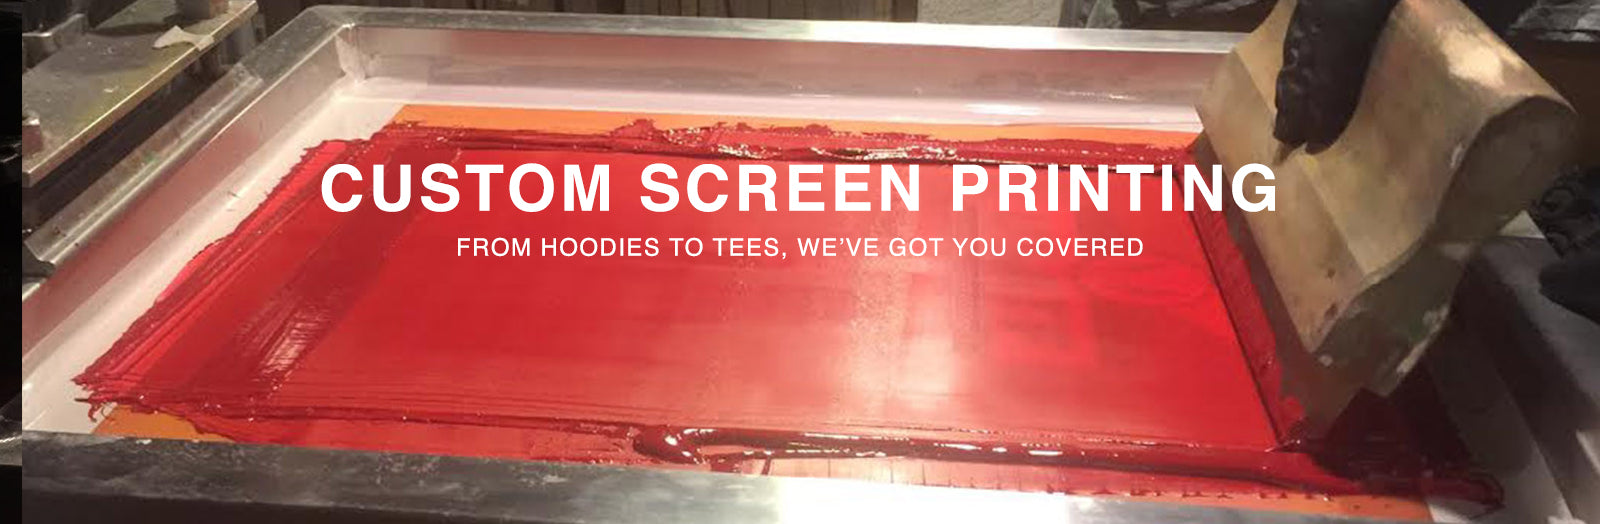 SF Screen Printing